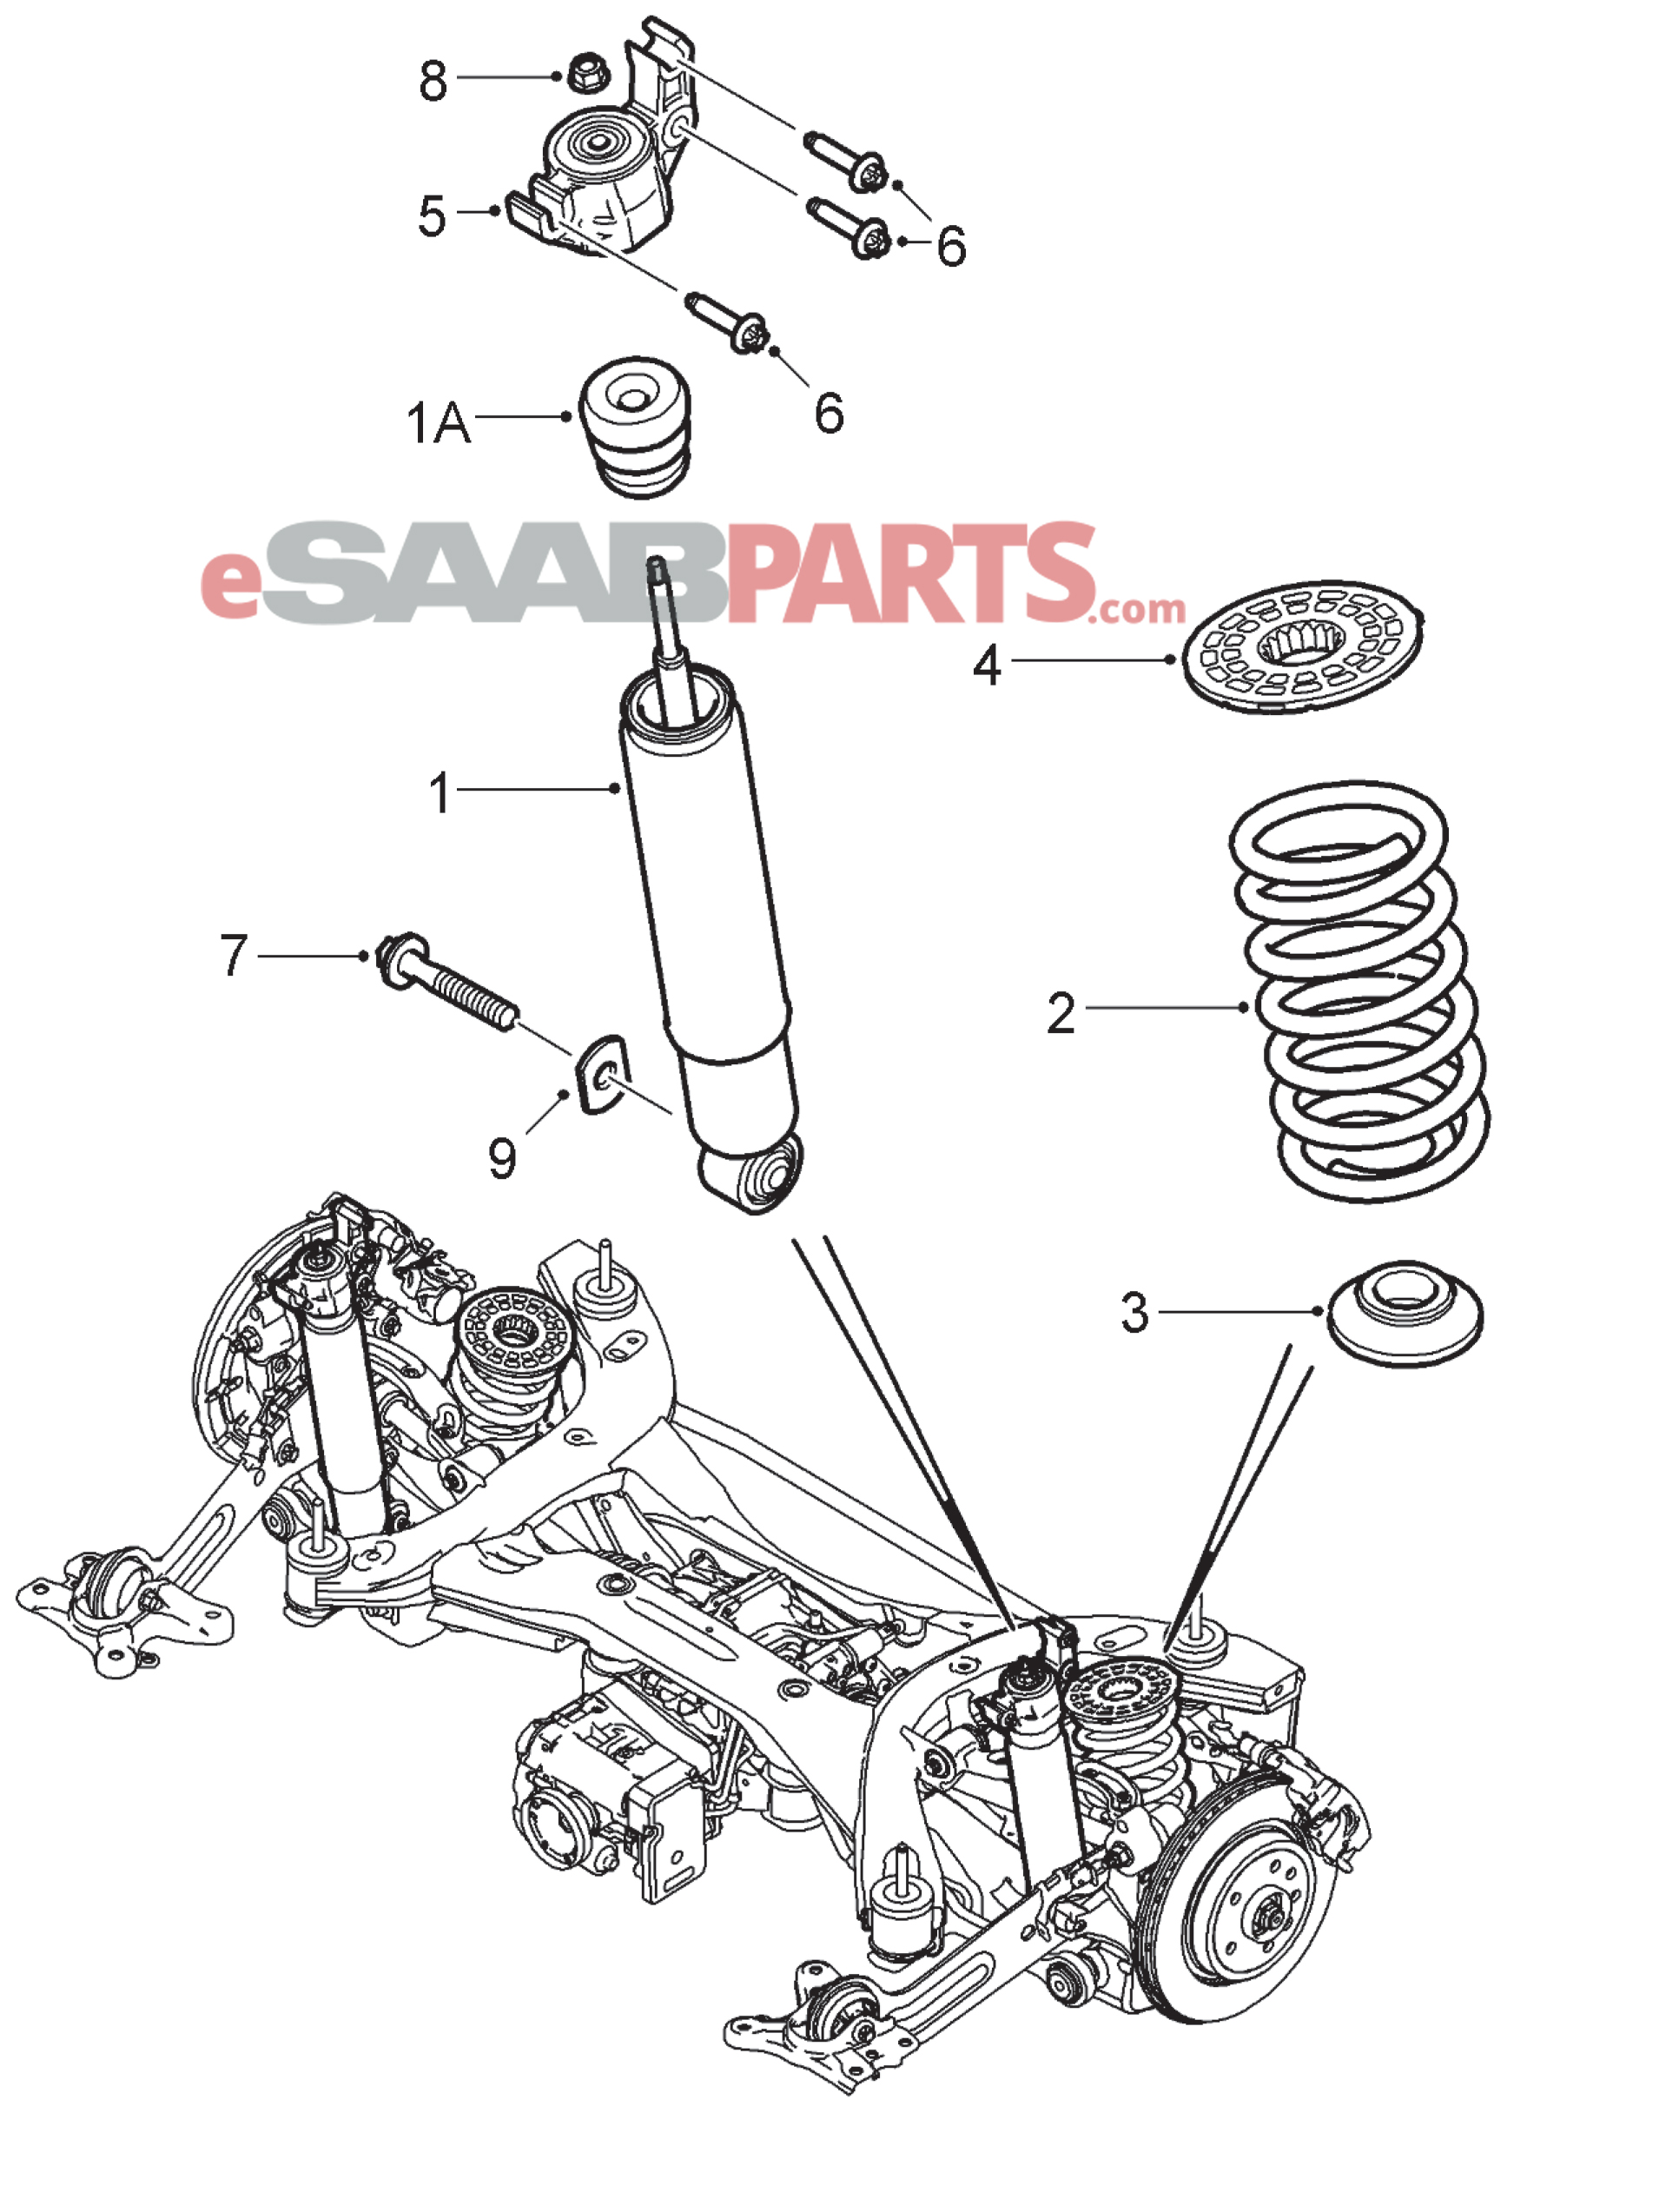 hight resolution of 1933x2546 saab rear shock absorber xwd suspension drawing